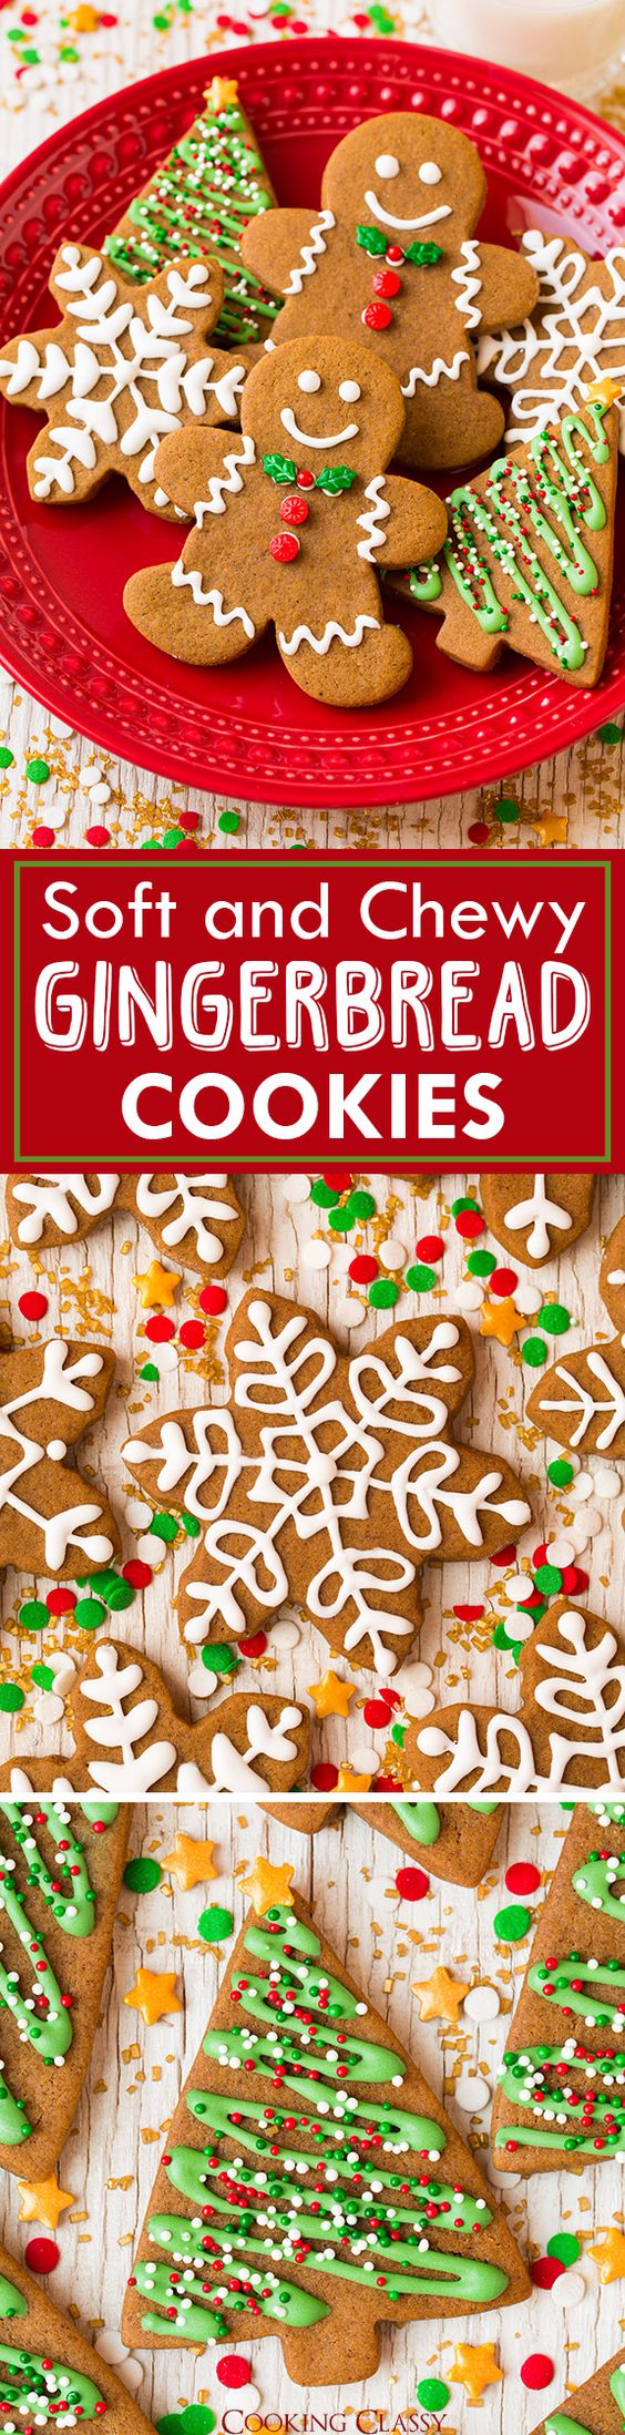 Best Recipes for Christmas Cookies- Gingerbread Cookies - Easy Decorated Holiday Cookies - Candy Cookie Recipes Ideas for Kids - Traditional Favorites and Gluten Free and Healthy Versions - Quick No Bake Cookies and Last Minute Desserts for the Holidays http://diyjoy.com/best-christmas-cookie-recipes